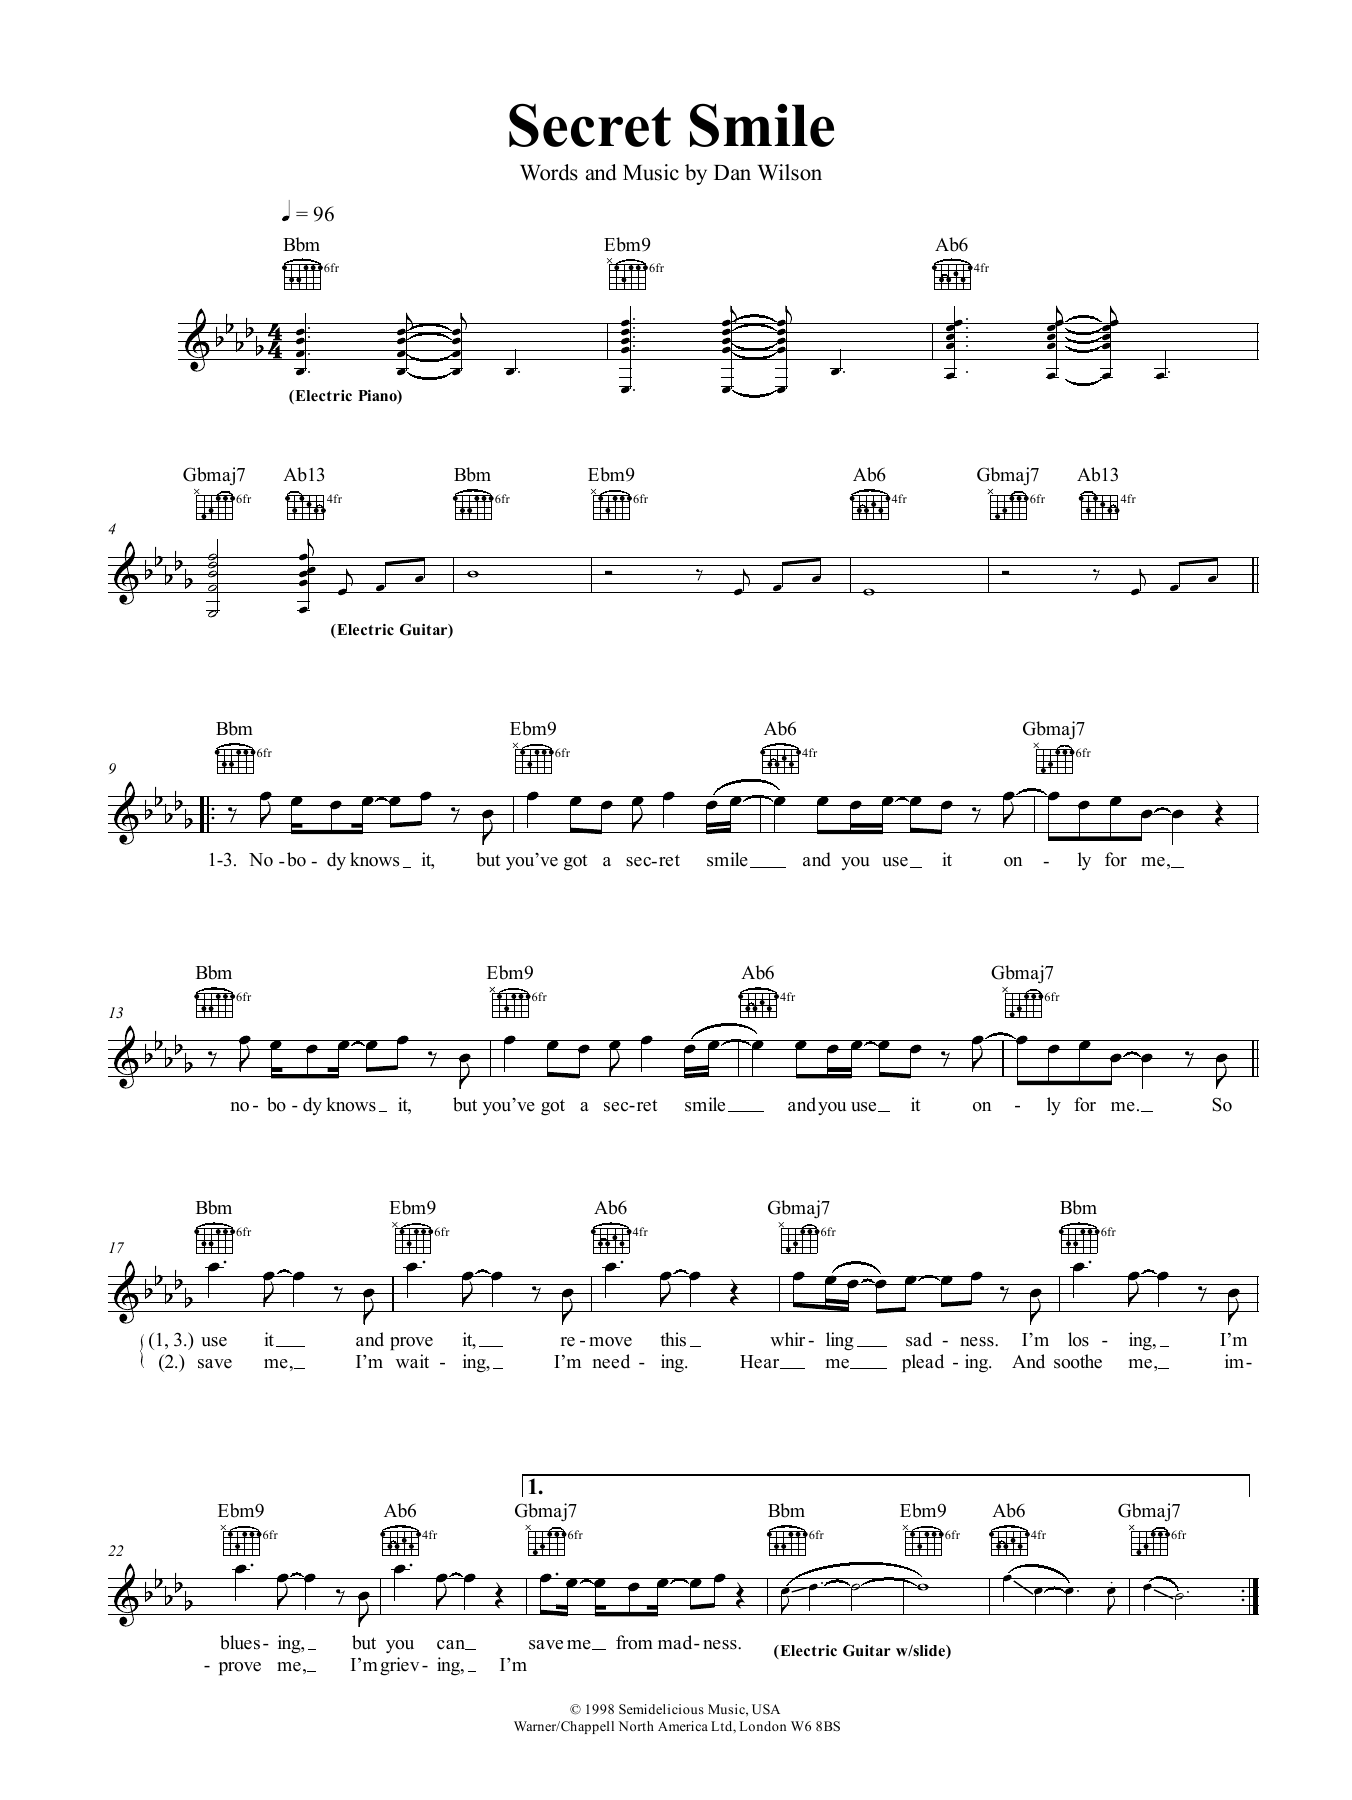 Secret Smile Sheet Music Semisonic Melody Line Lyrics Chords